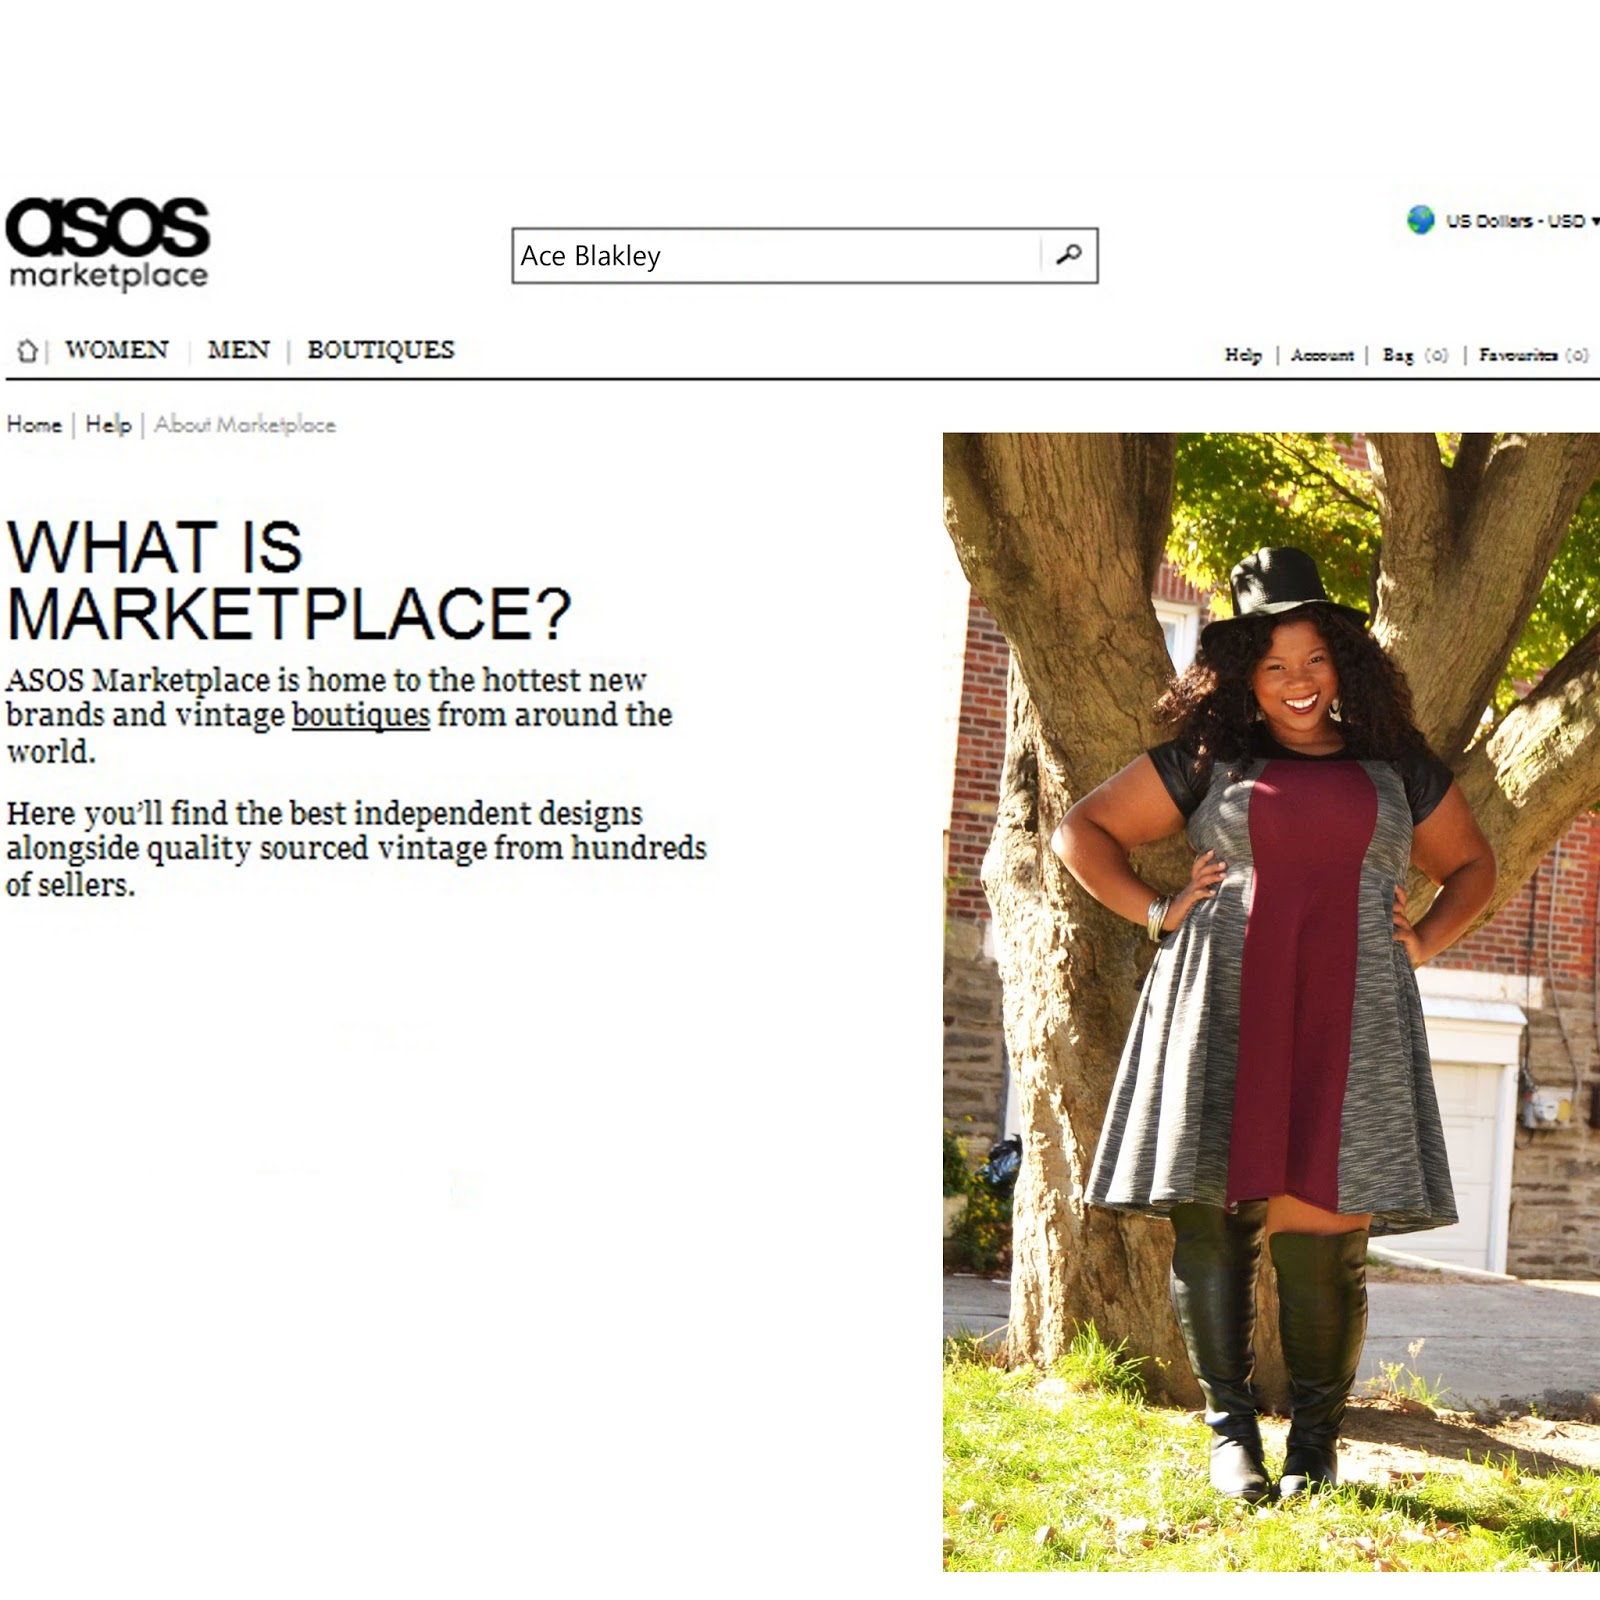 ace blakley on asos marketplace